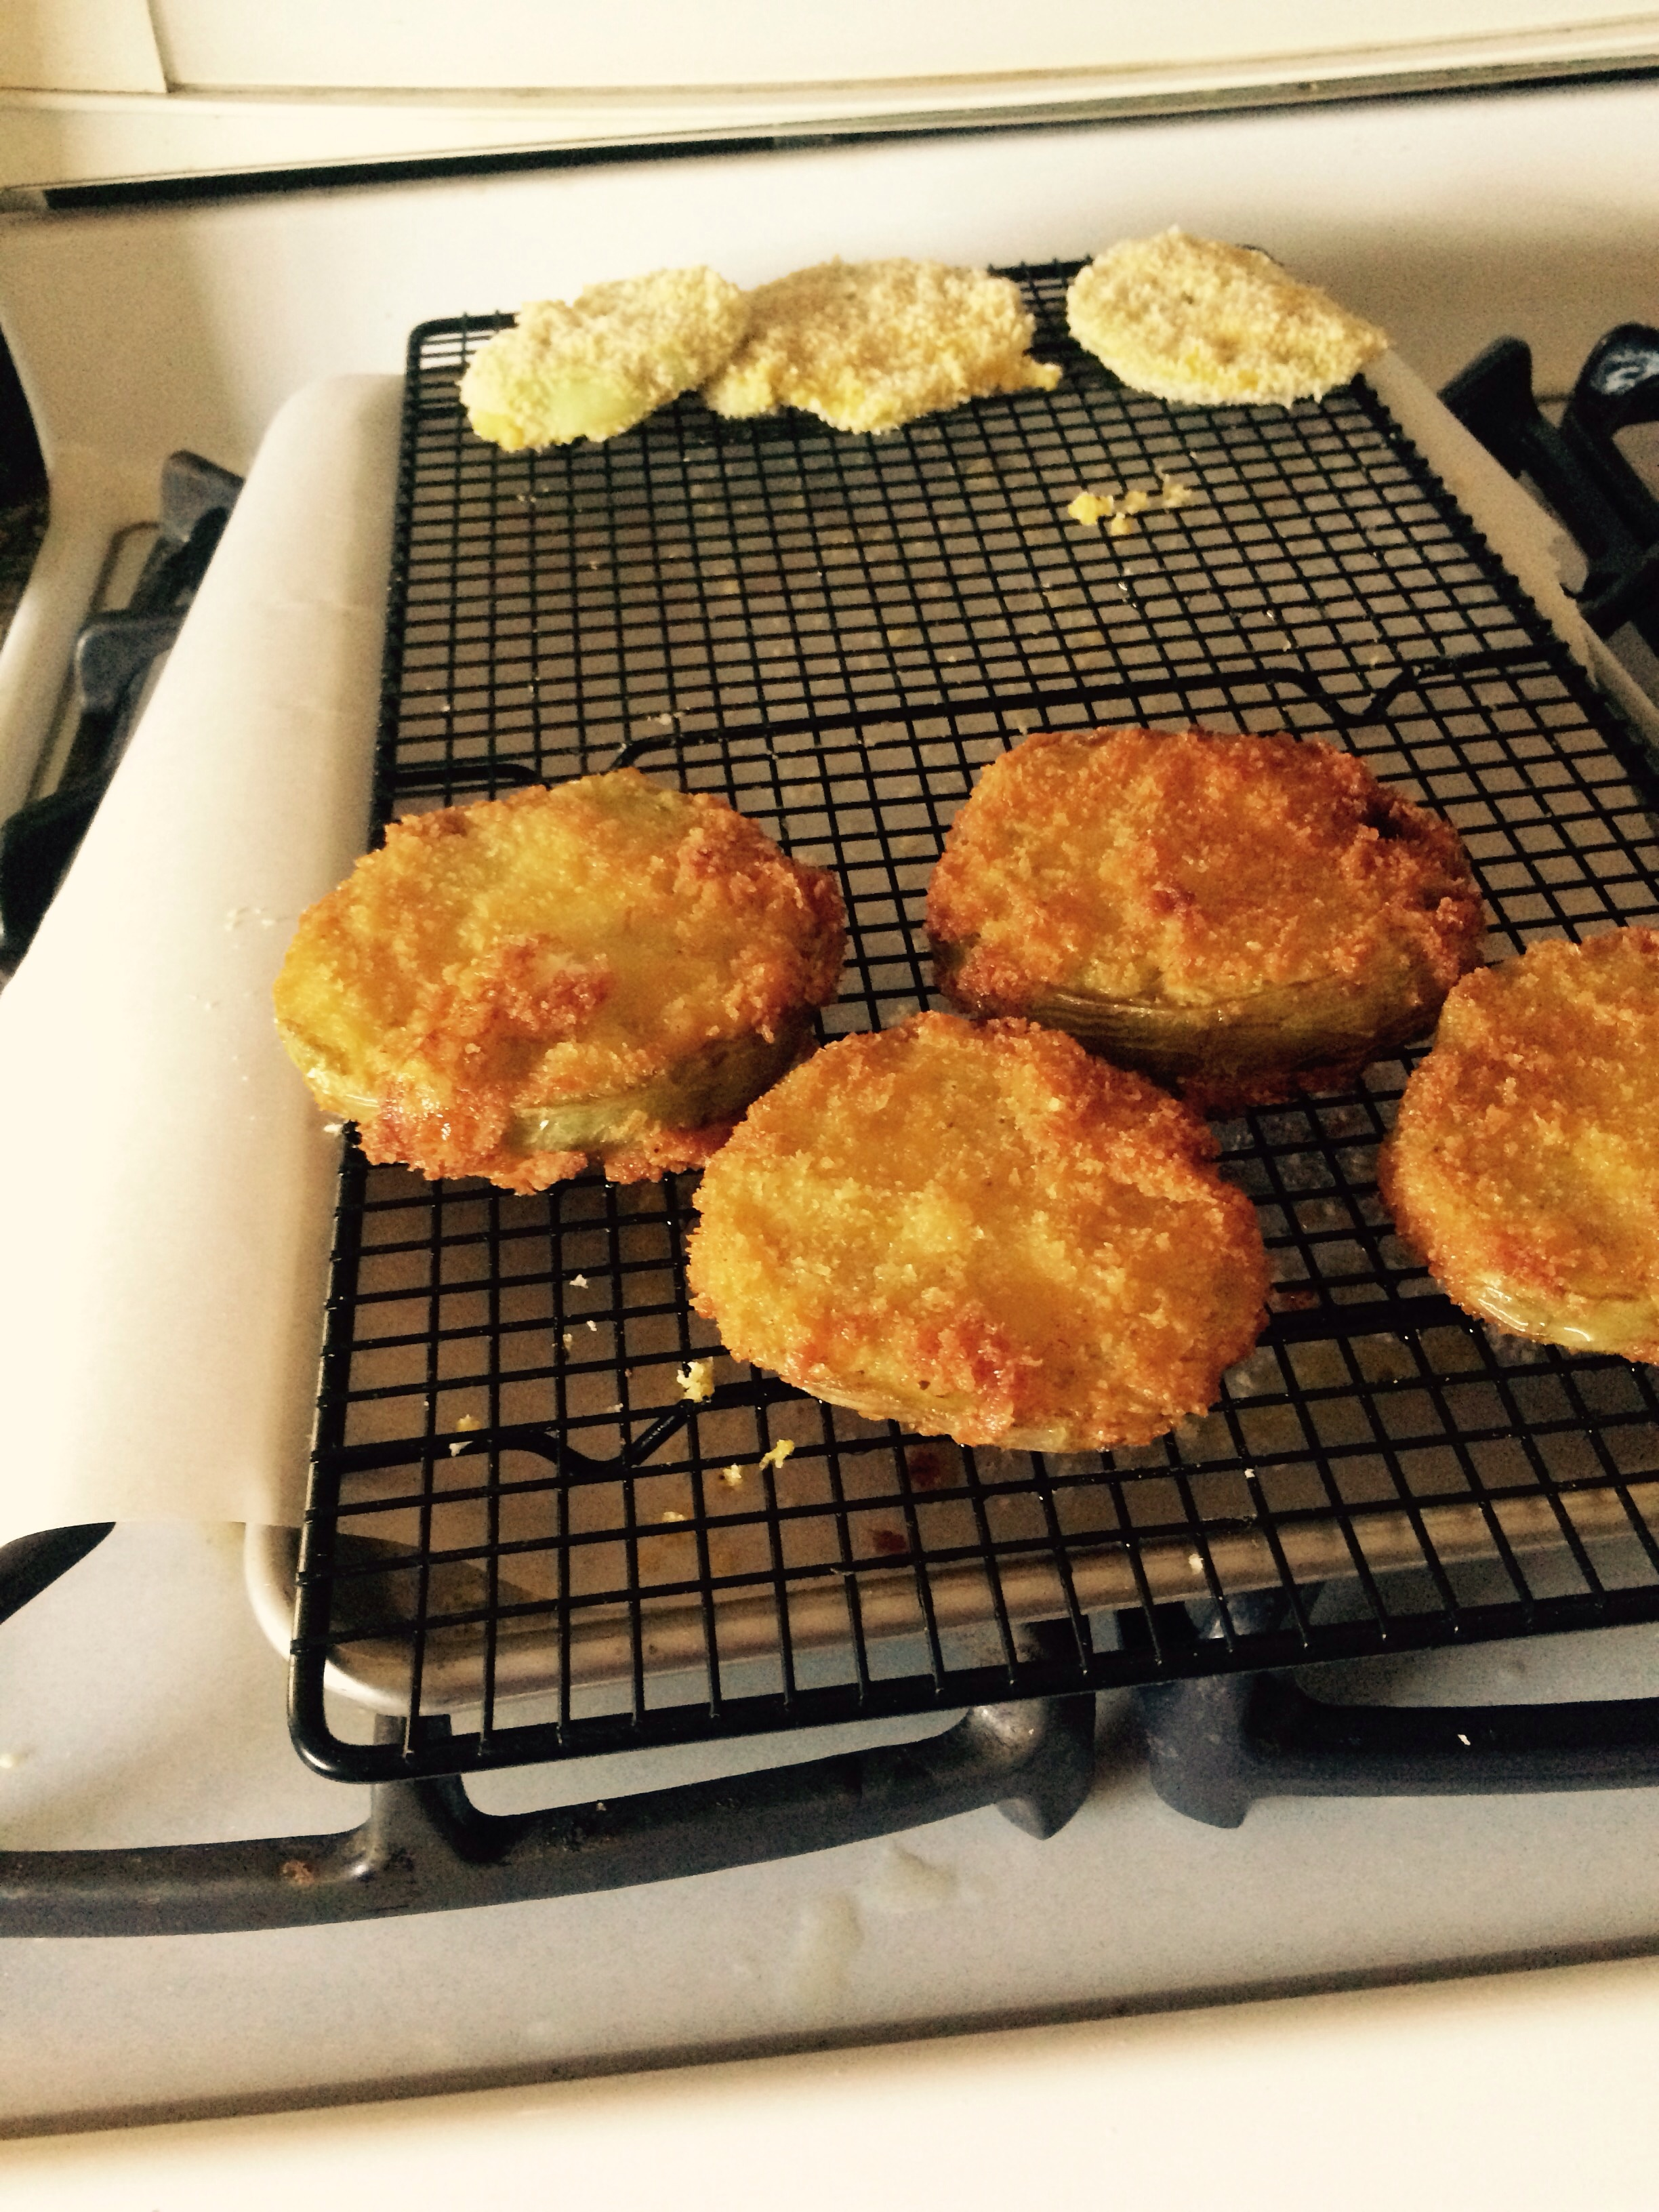 Yikes never made these but had some green tomatoes that came off when picking ripe heirloom tomatoes